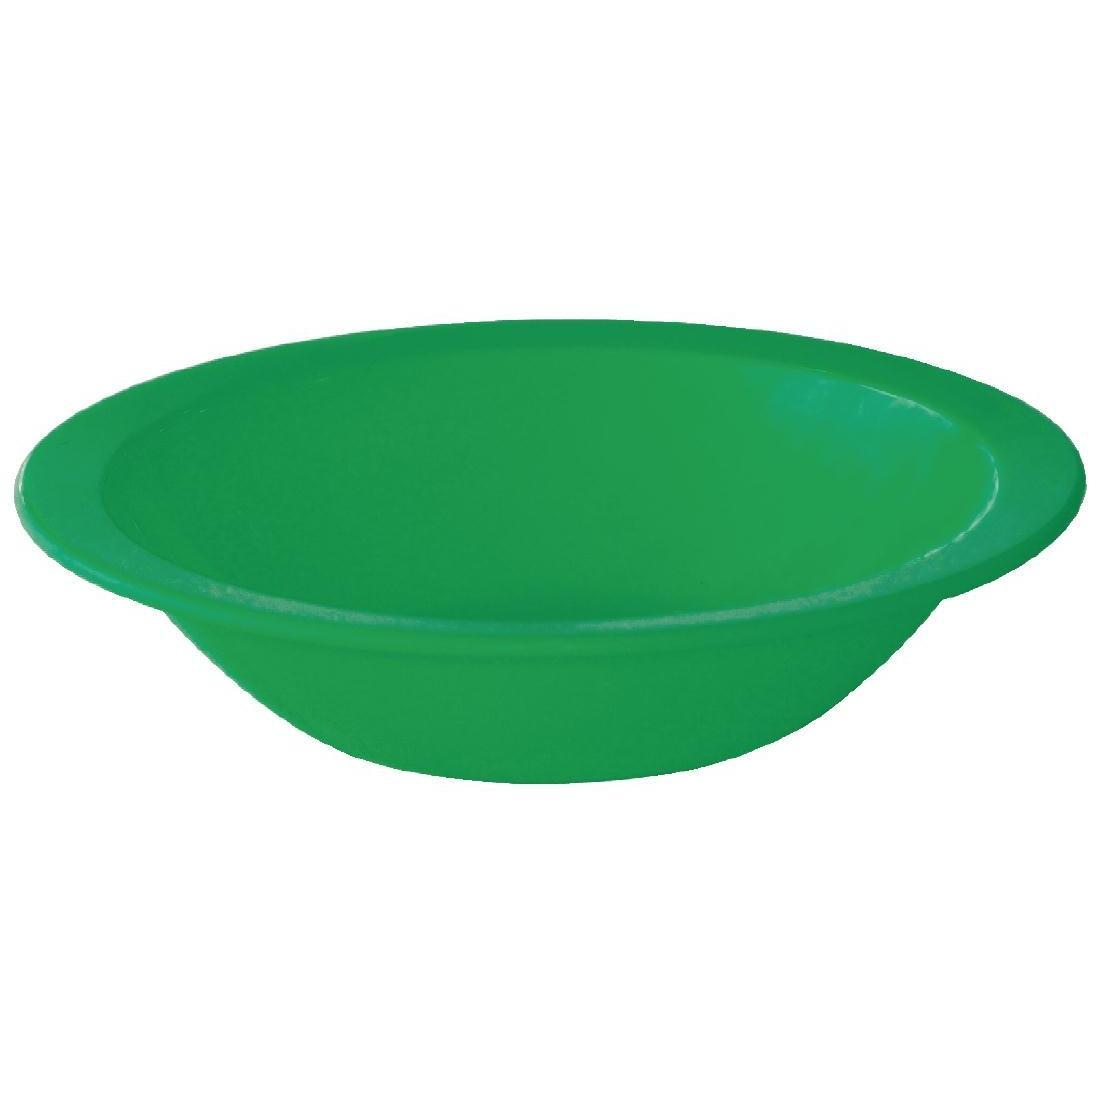 Kristallon Polycarbonate Bowls Green 172mm - Case 12 - CB772